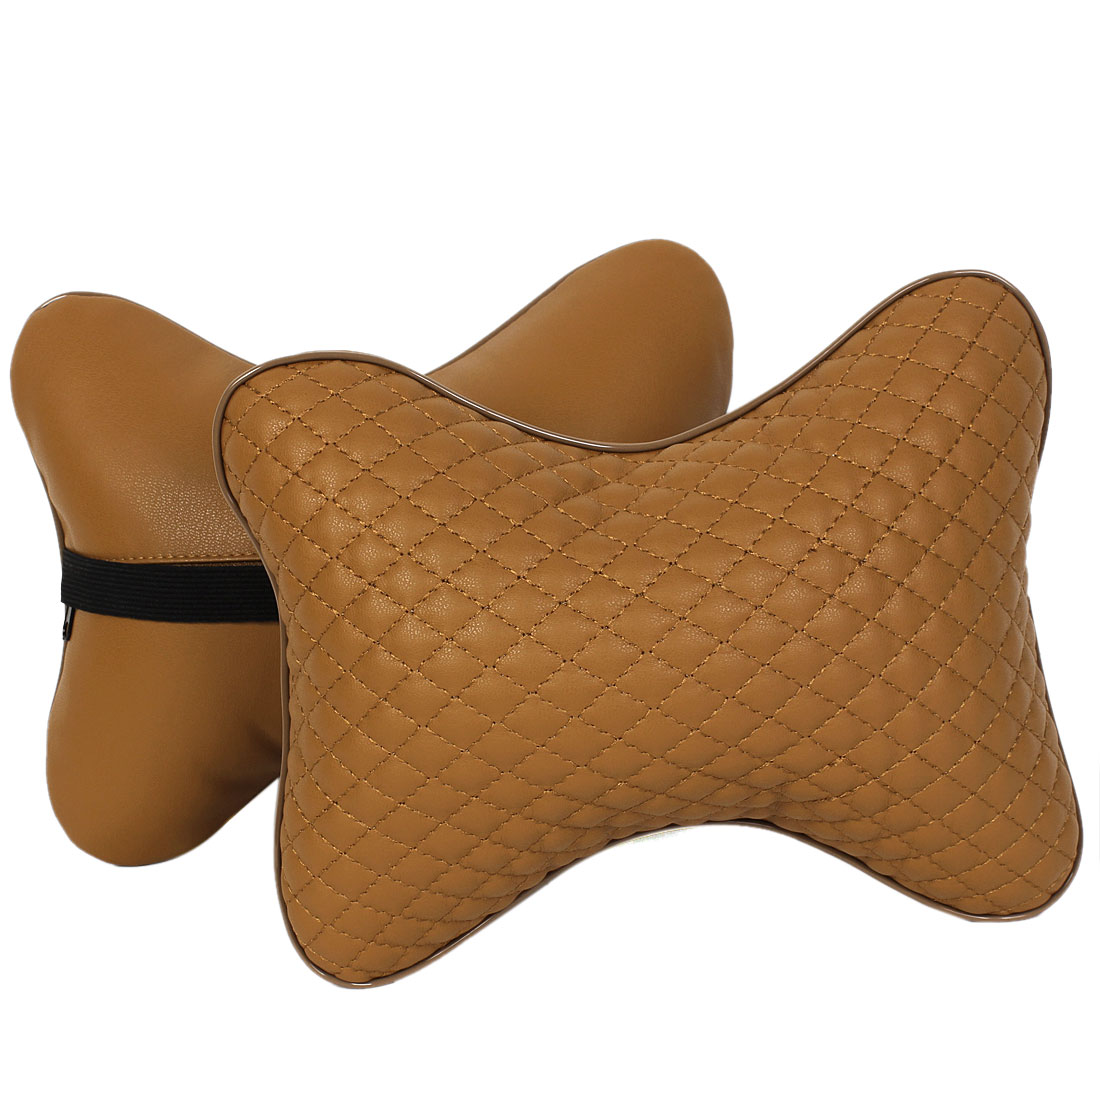 Car Brown Bone Shape Rhombus Pattern Neck Rest Breathe Cushion Pillow Pair